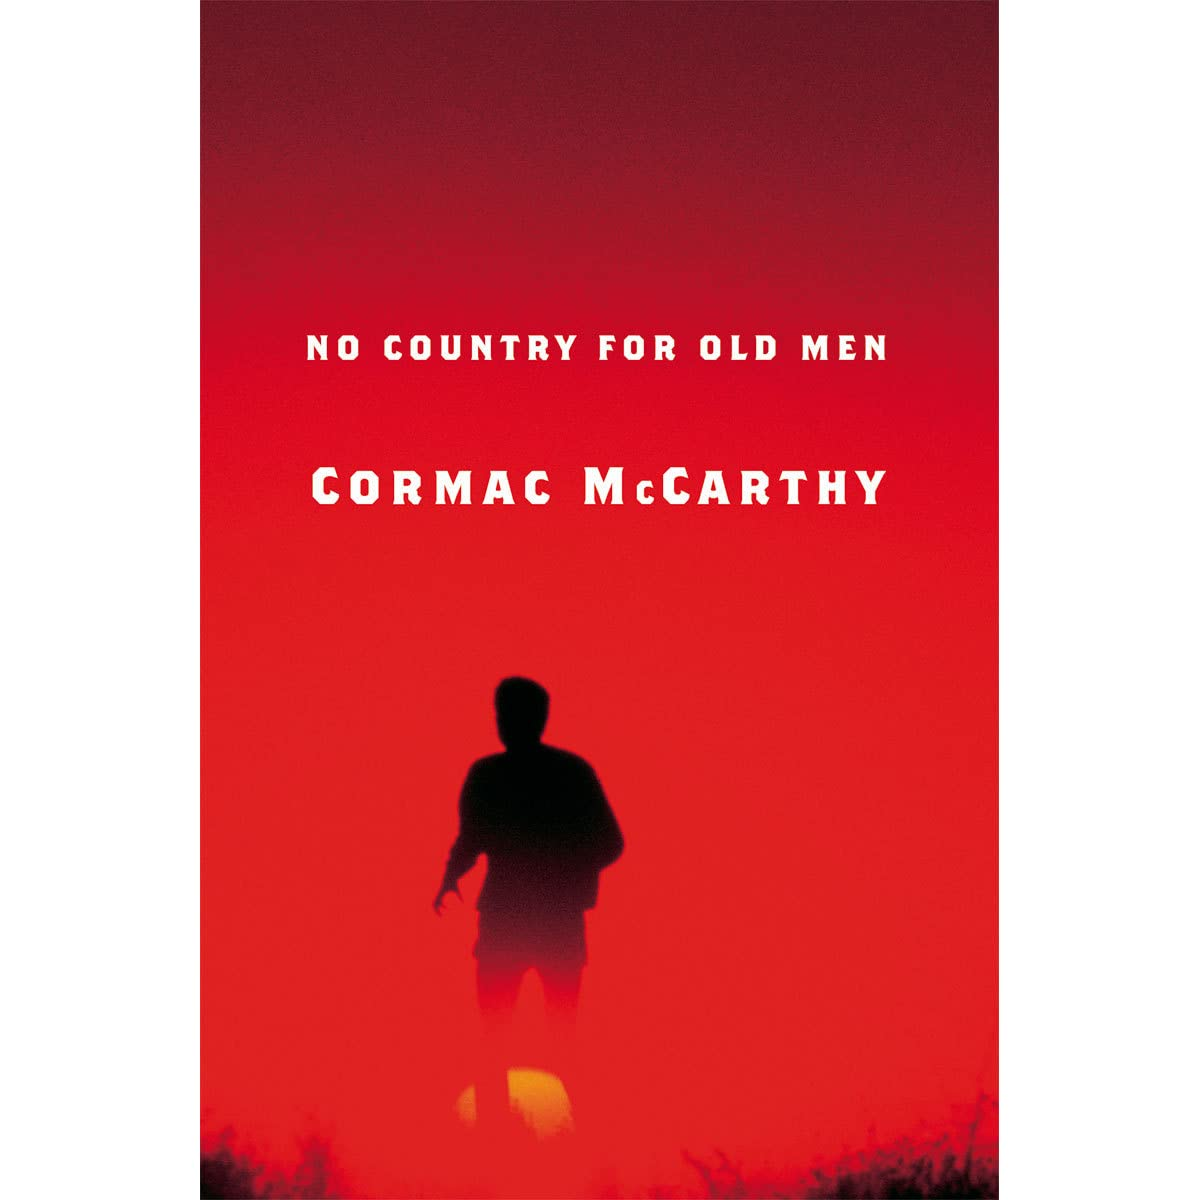 No country for old men by cormac mccarthy fandeluxe Images